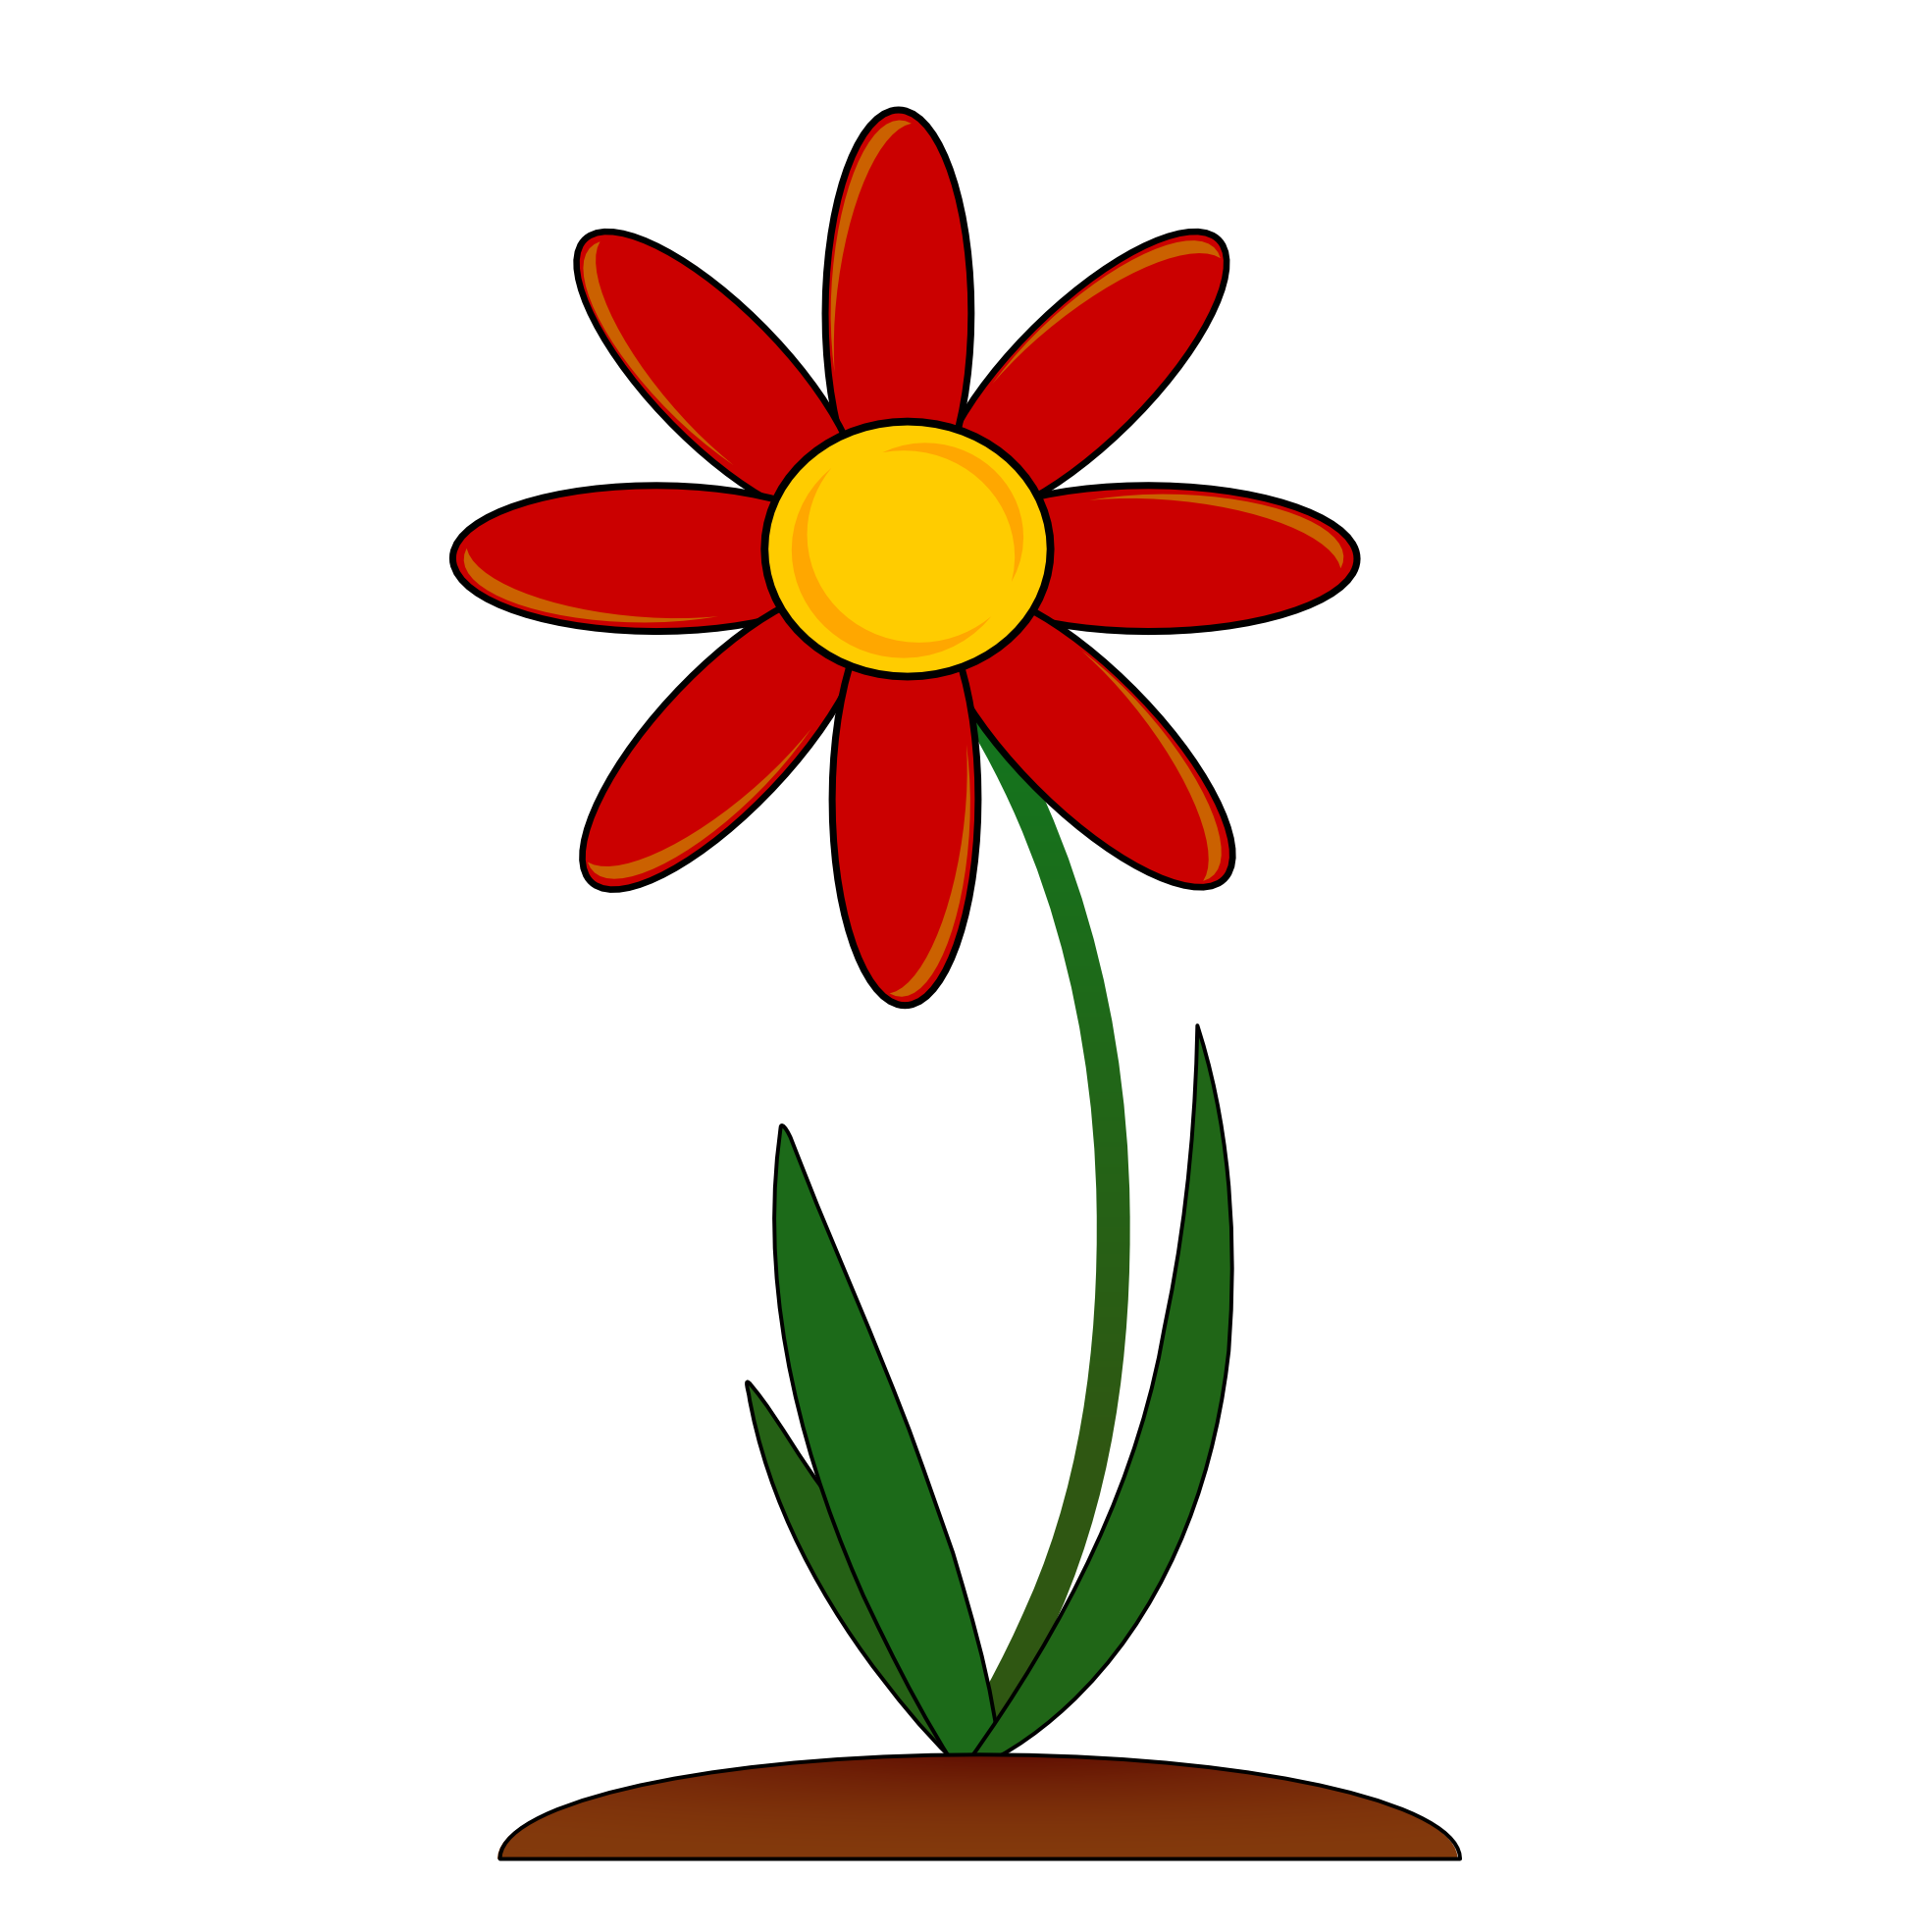 Flower clipart png. Red border clip art